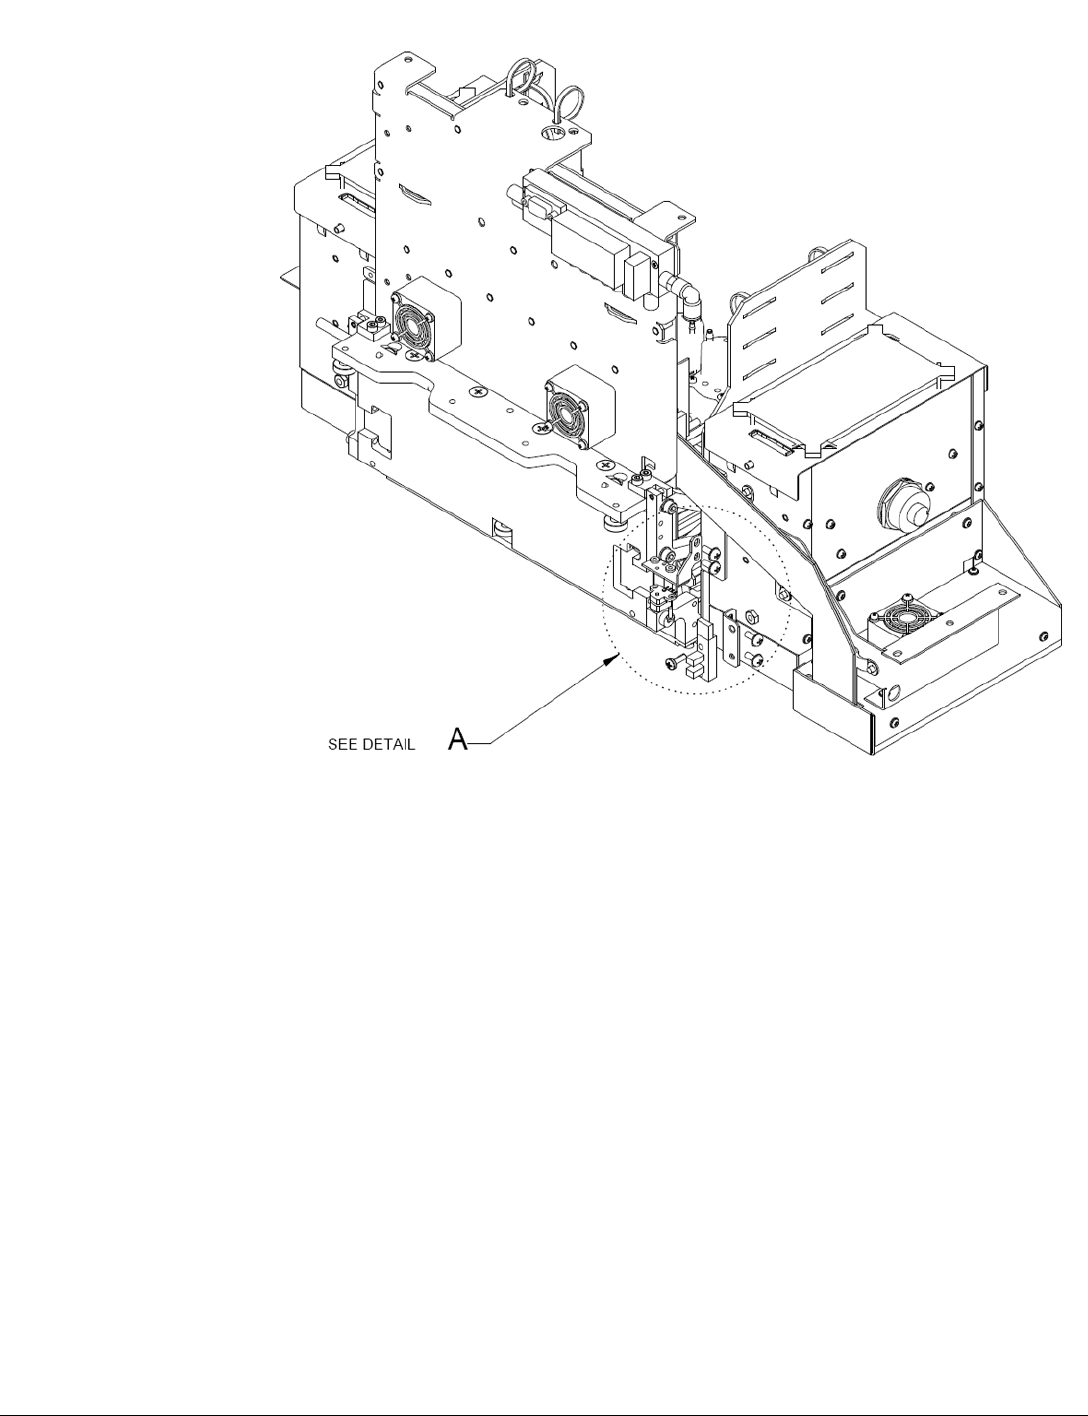 Cq114 90035 rev b hp scitex fb500 fb700 service manual page 42 of 510